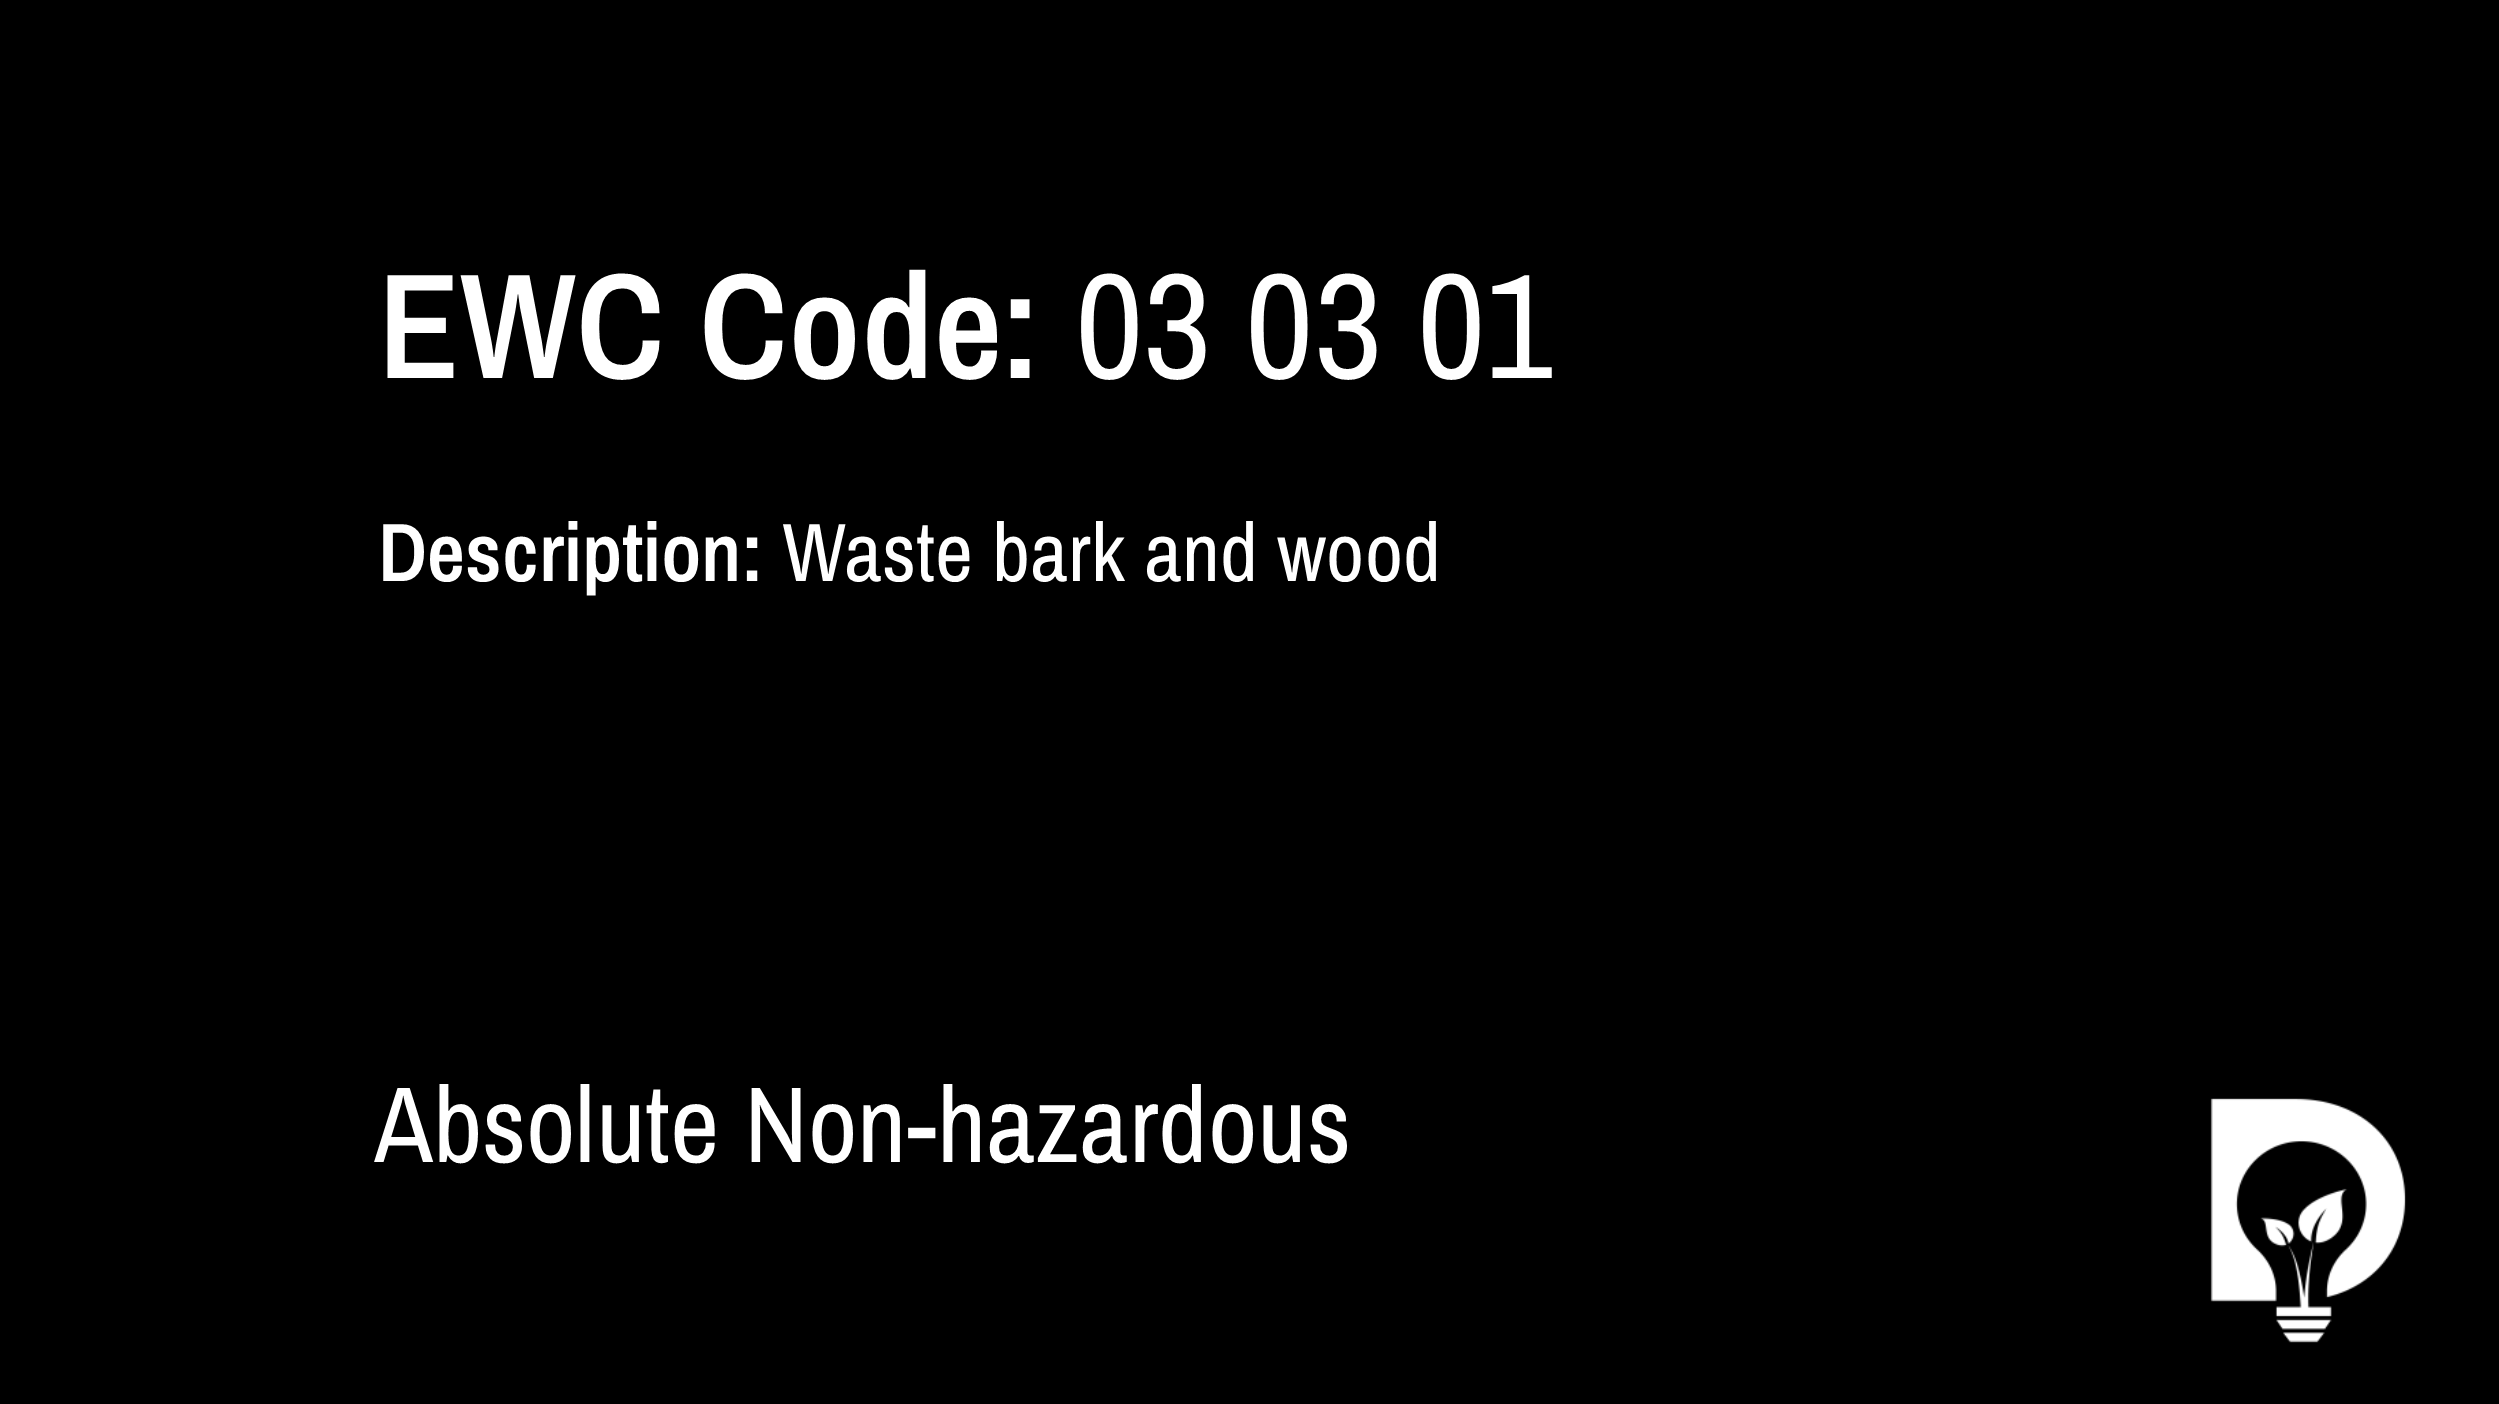 EWC Code: 03 03 01 - waste bark and wood. Type: Absolute Non-hazardous. Image by Dsposal